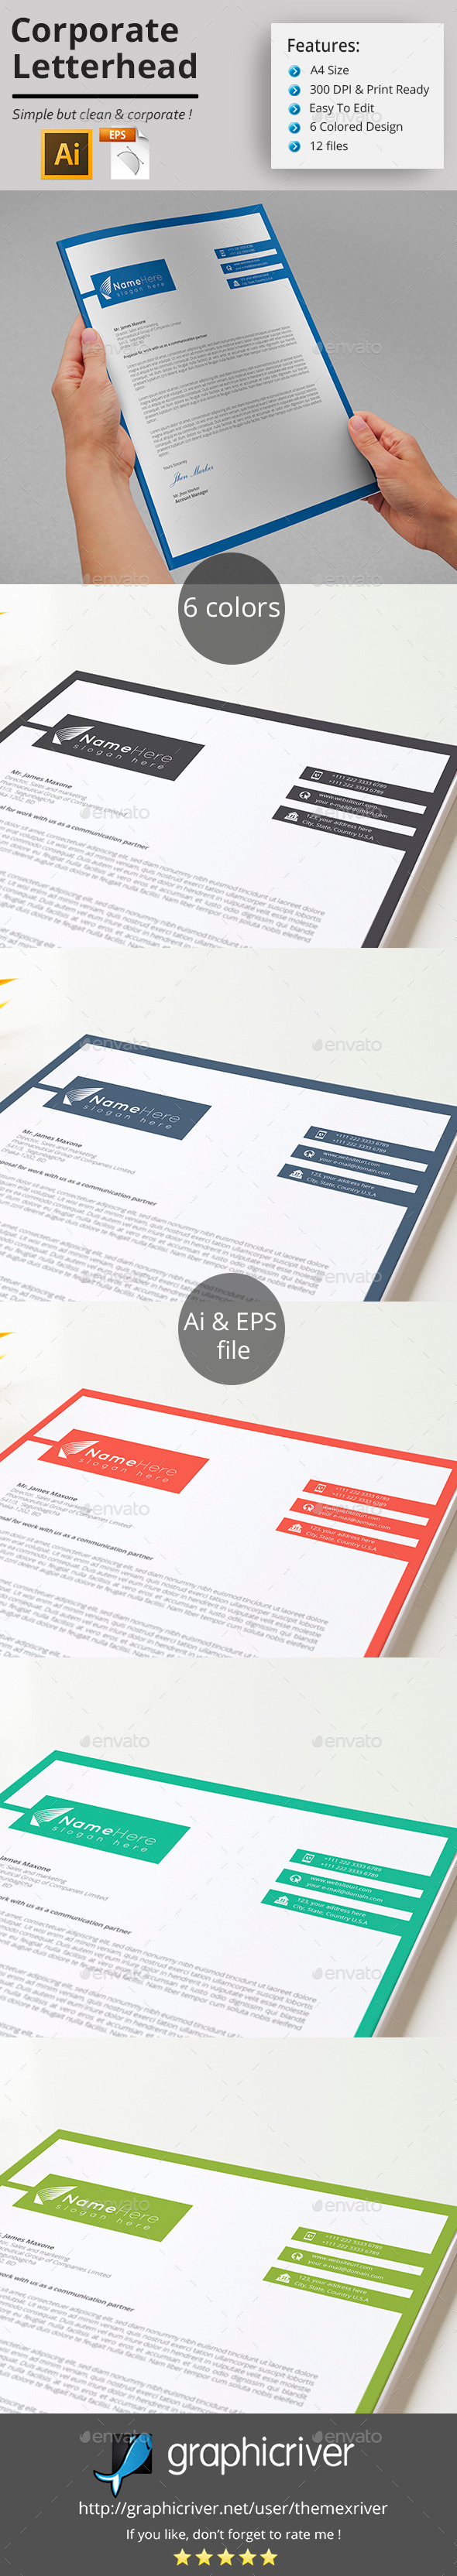 GraphicRiver Corporate Letterhead 11498046